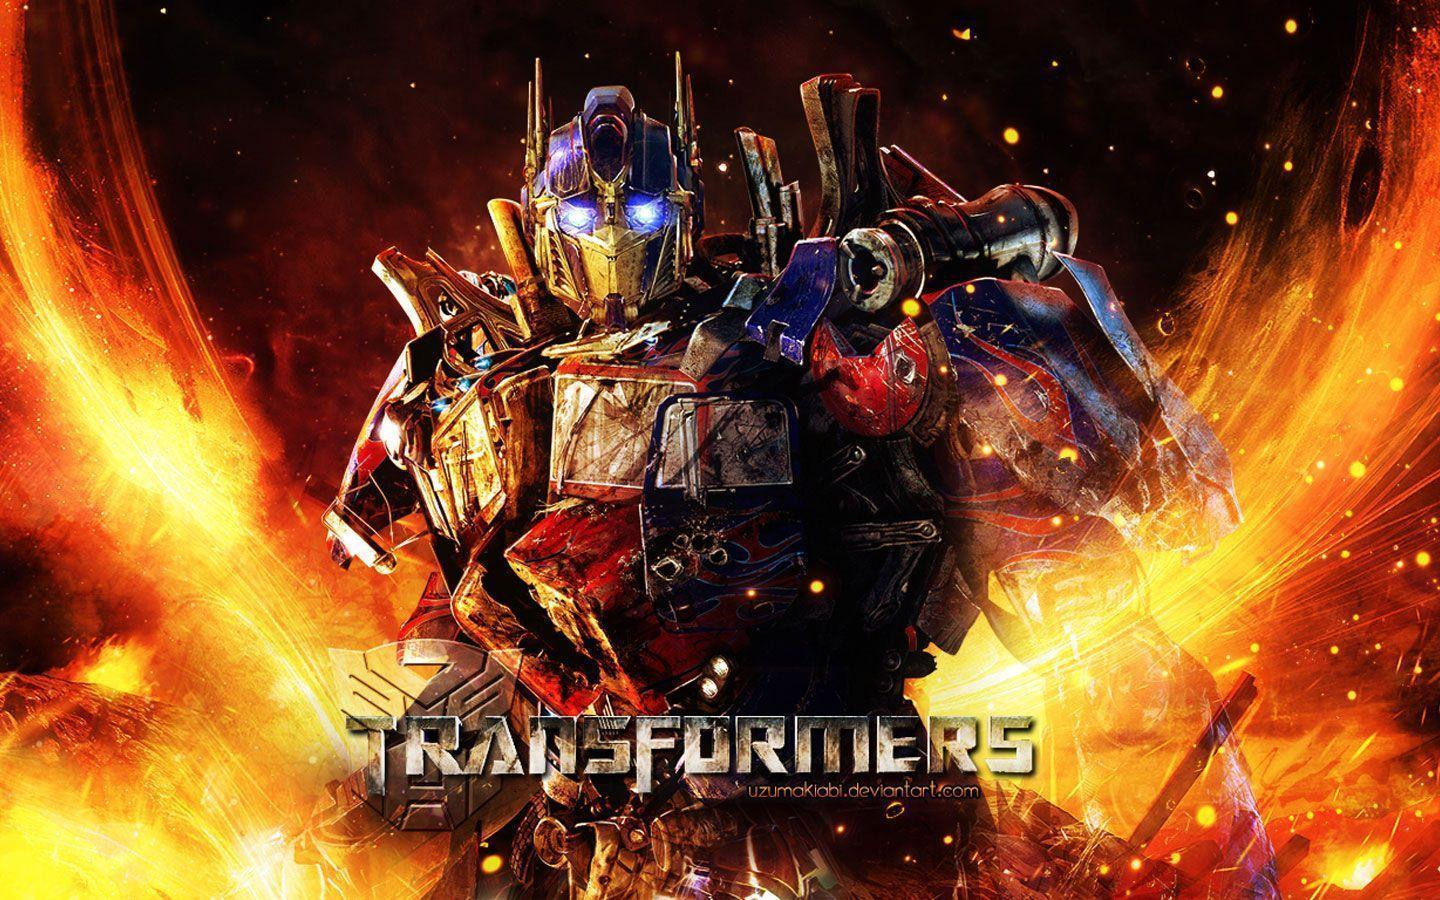 Transformers Fall Of Cybertron Wallpaper 1920x1080 Transformers Prime Wallpapers Hd Wallpaper Cave